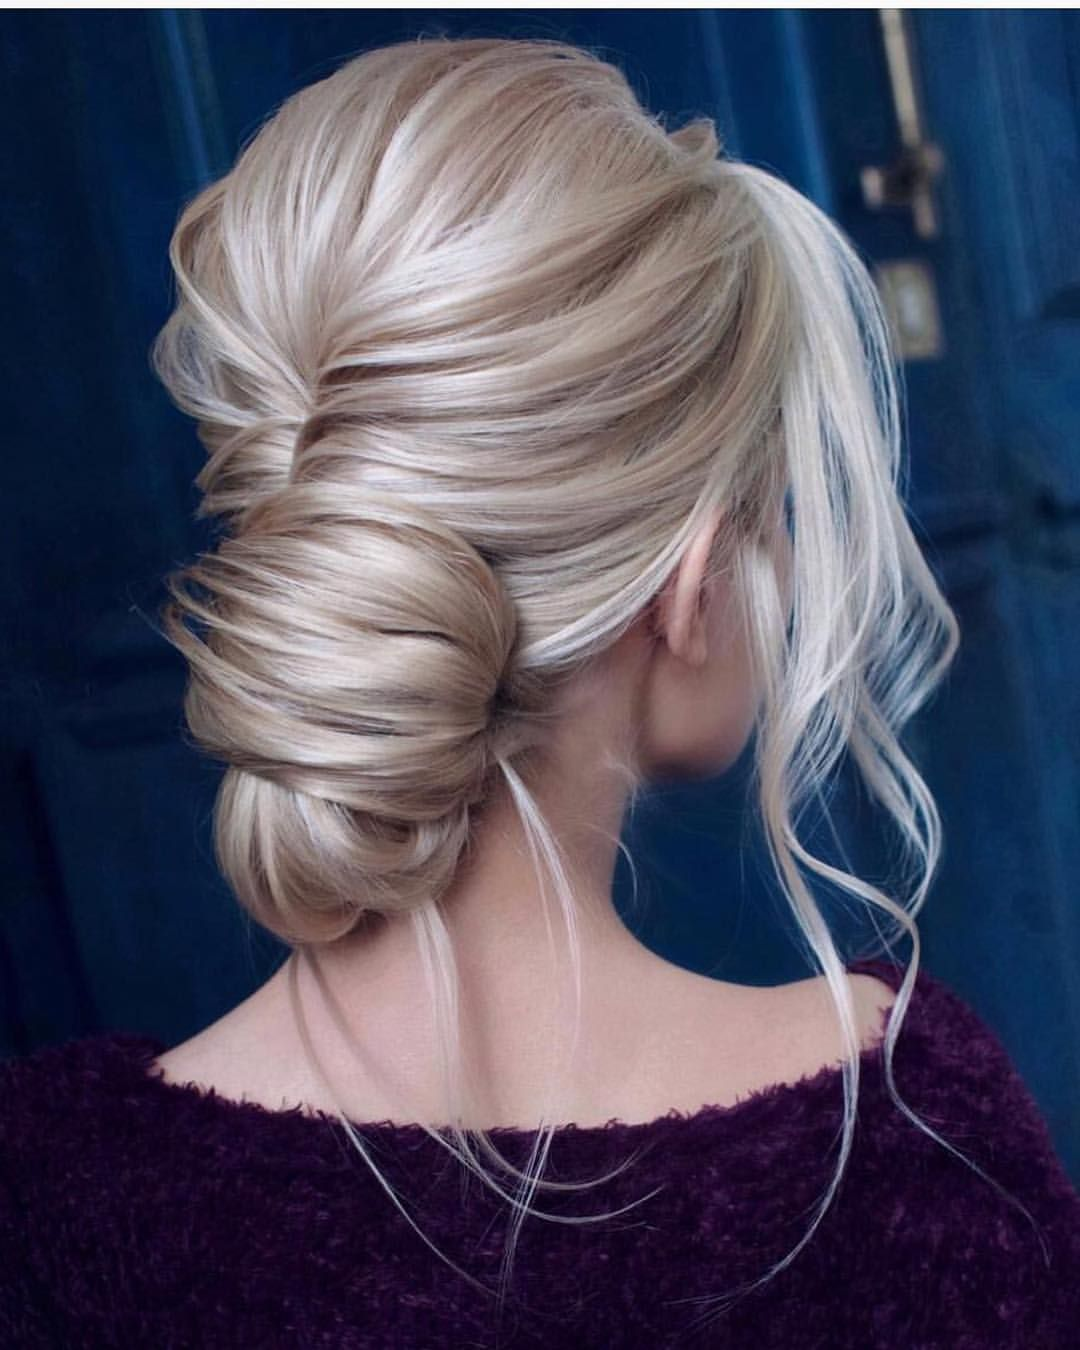 Pin by nikki yb on bridal party pinterest elegant updo updo and